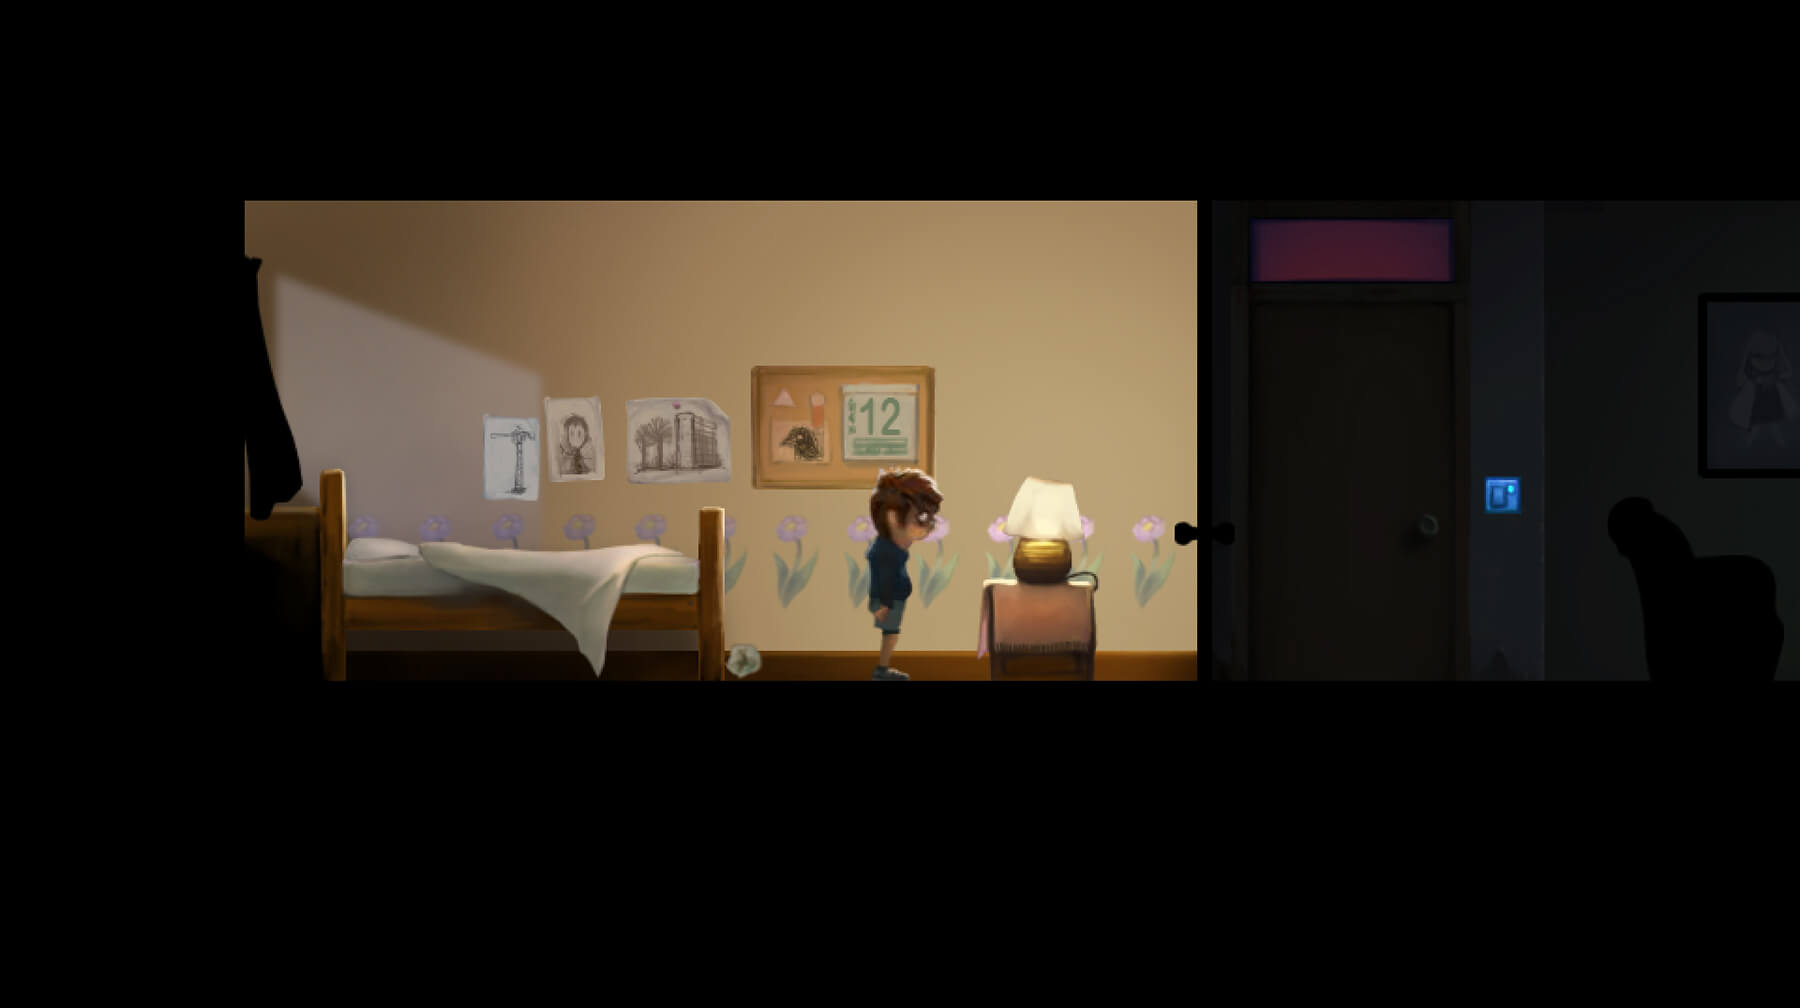 Past Twelve game screenshot shows a young boy in his bedroom at night.